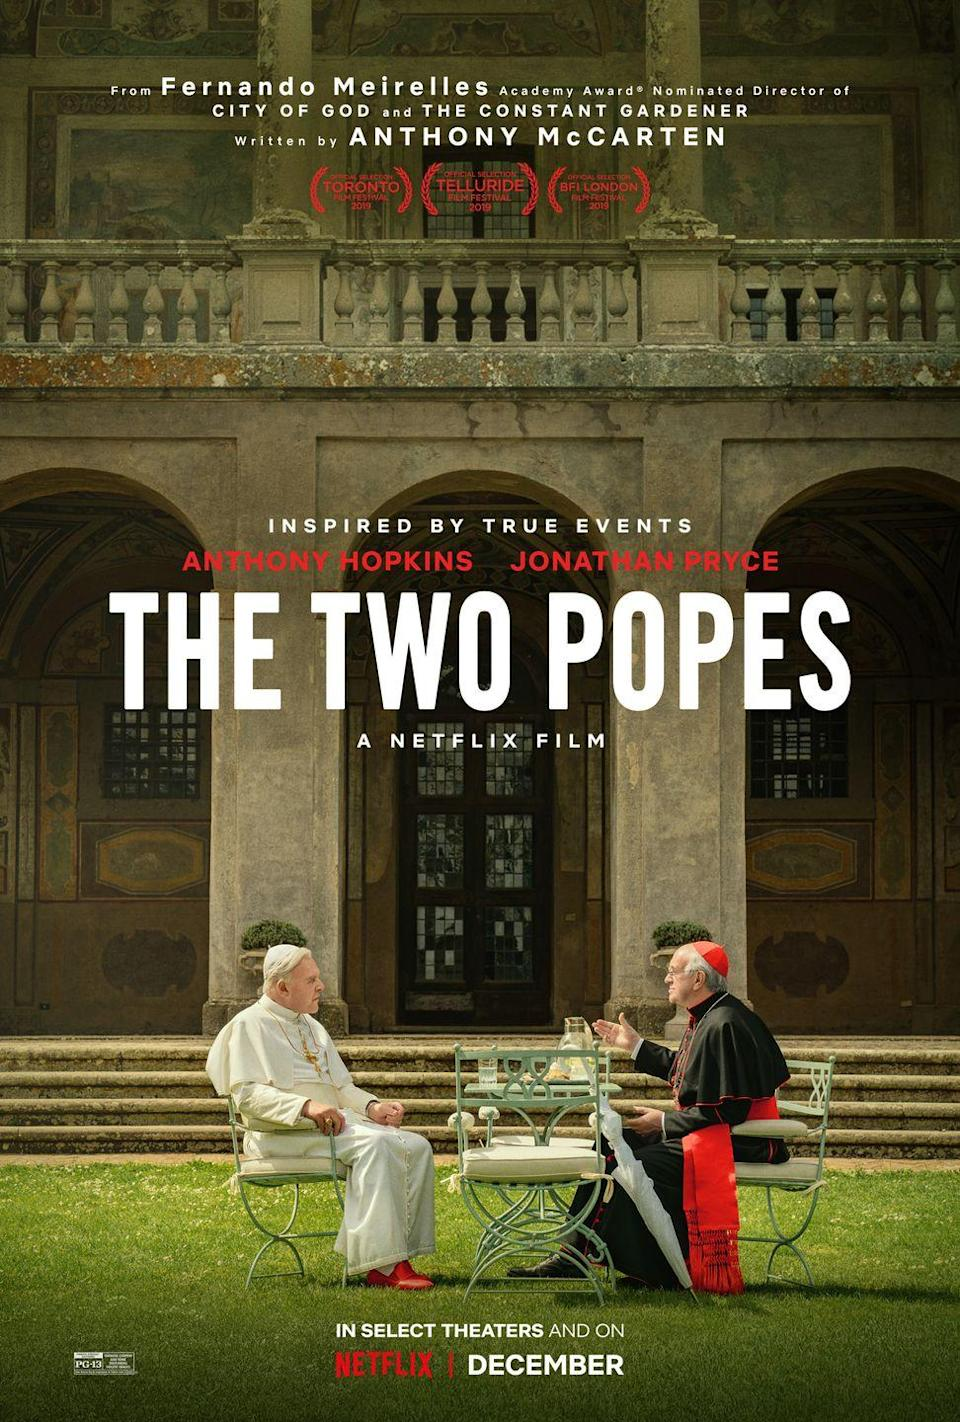 """<p>Yes, big surprise, this is about two popes, but specifically the period of time when the conservative Pope Benedict XVI met with the future liberal Pope Francis. Starring two-time Academy Award winner Anthony Hopkins and two-time Tony Award winner Jonathan Pryce, the Netflix film shows the religious leaders challenging each other's views behind Vatican walls.</p><p><a class=""""link rapid-noclick-resp"""" href=""""https://www.netflix.com/title/80174451"""" rel=""""nofollow noopener"""" target=""""_blank"""" data-ylk=""""slk:Watch Here"""">Watch Here</a></p>"""